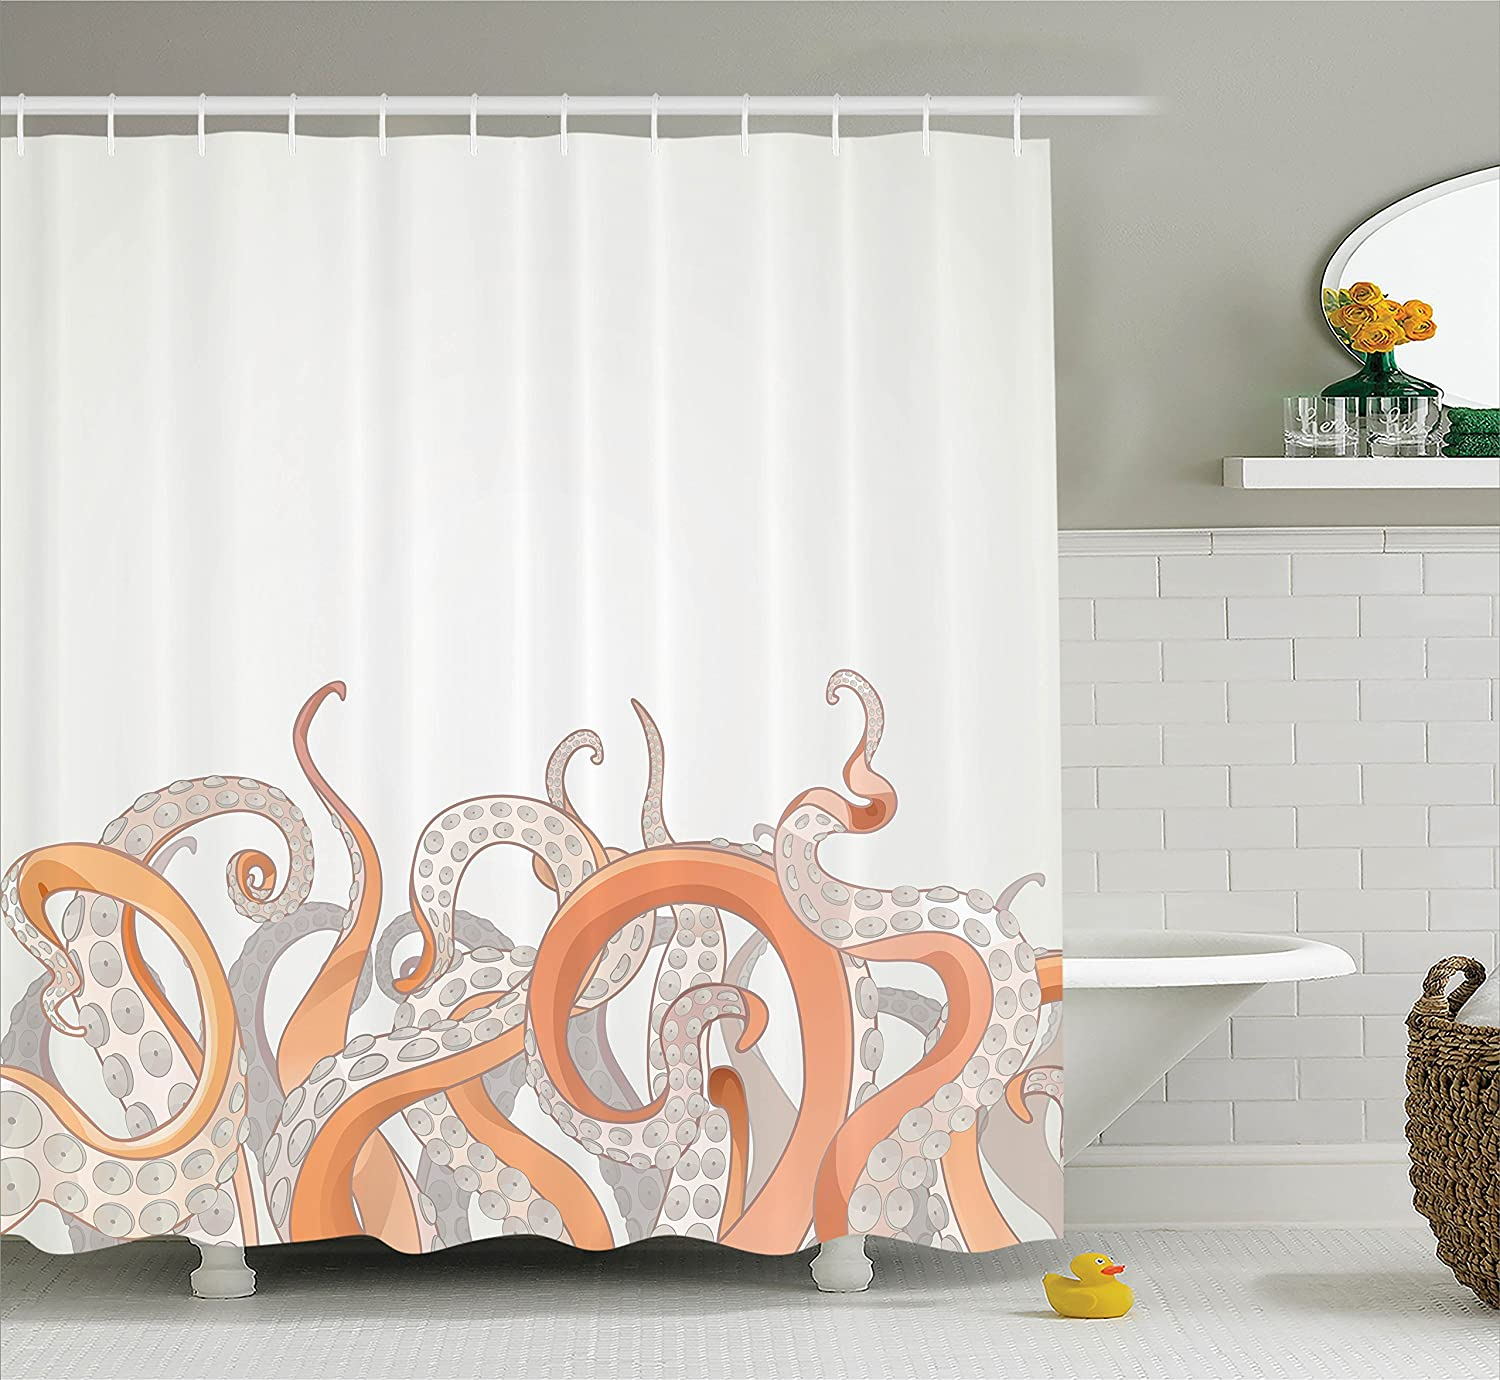 Octopus Tentacles Background Underwater Marine Nature And Sea Creatures Nautical Decor Polyester Fabric Bathroom Shower Curtain Set With Hooks